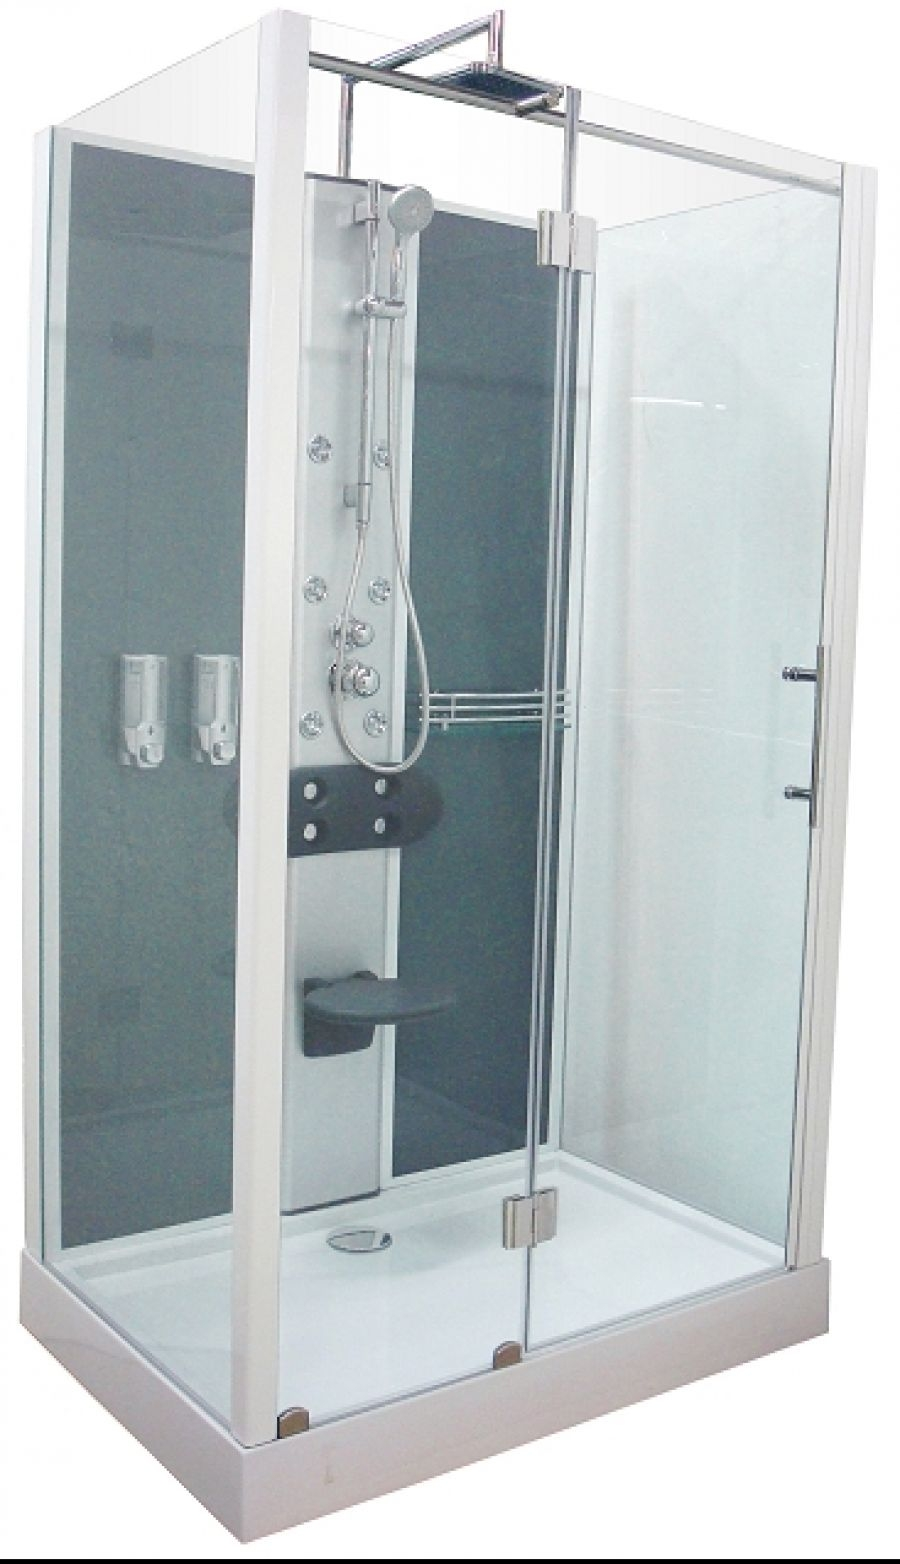 cabine de douche rectangulaire ela hydromassante meuble de salle de bain. Black Bedroom Furniture Sets. Home Design Ideas